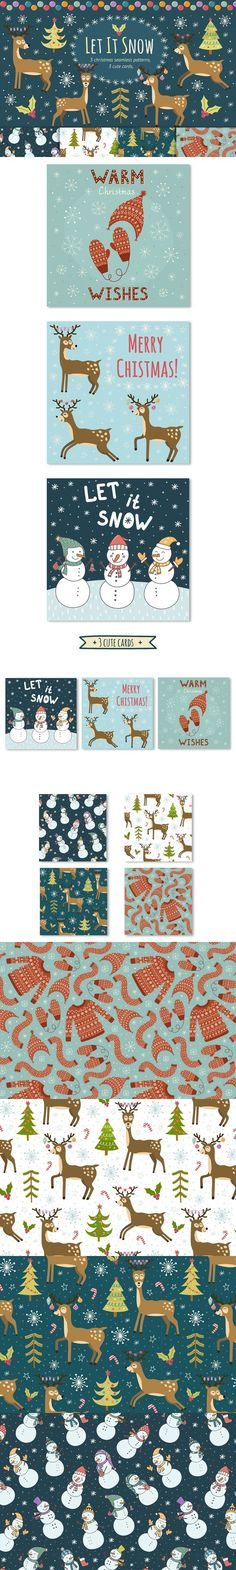 Let It Snow: patterns & cards. Christmas Patterns